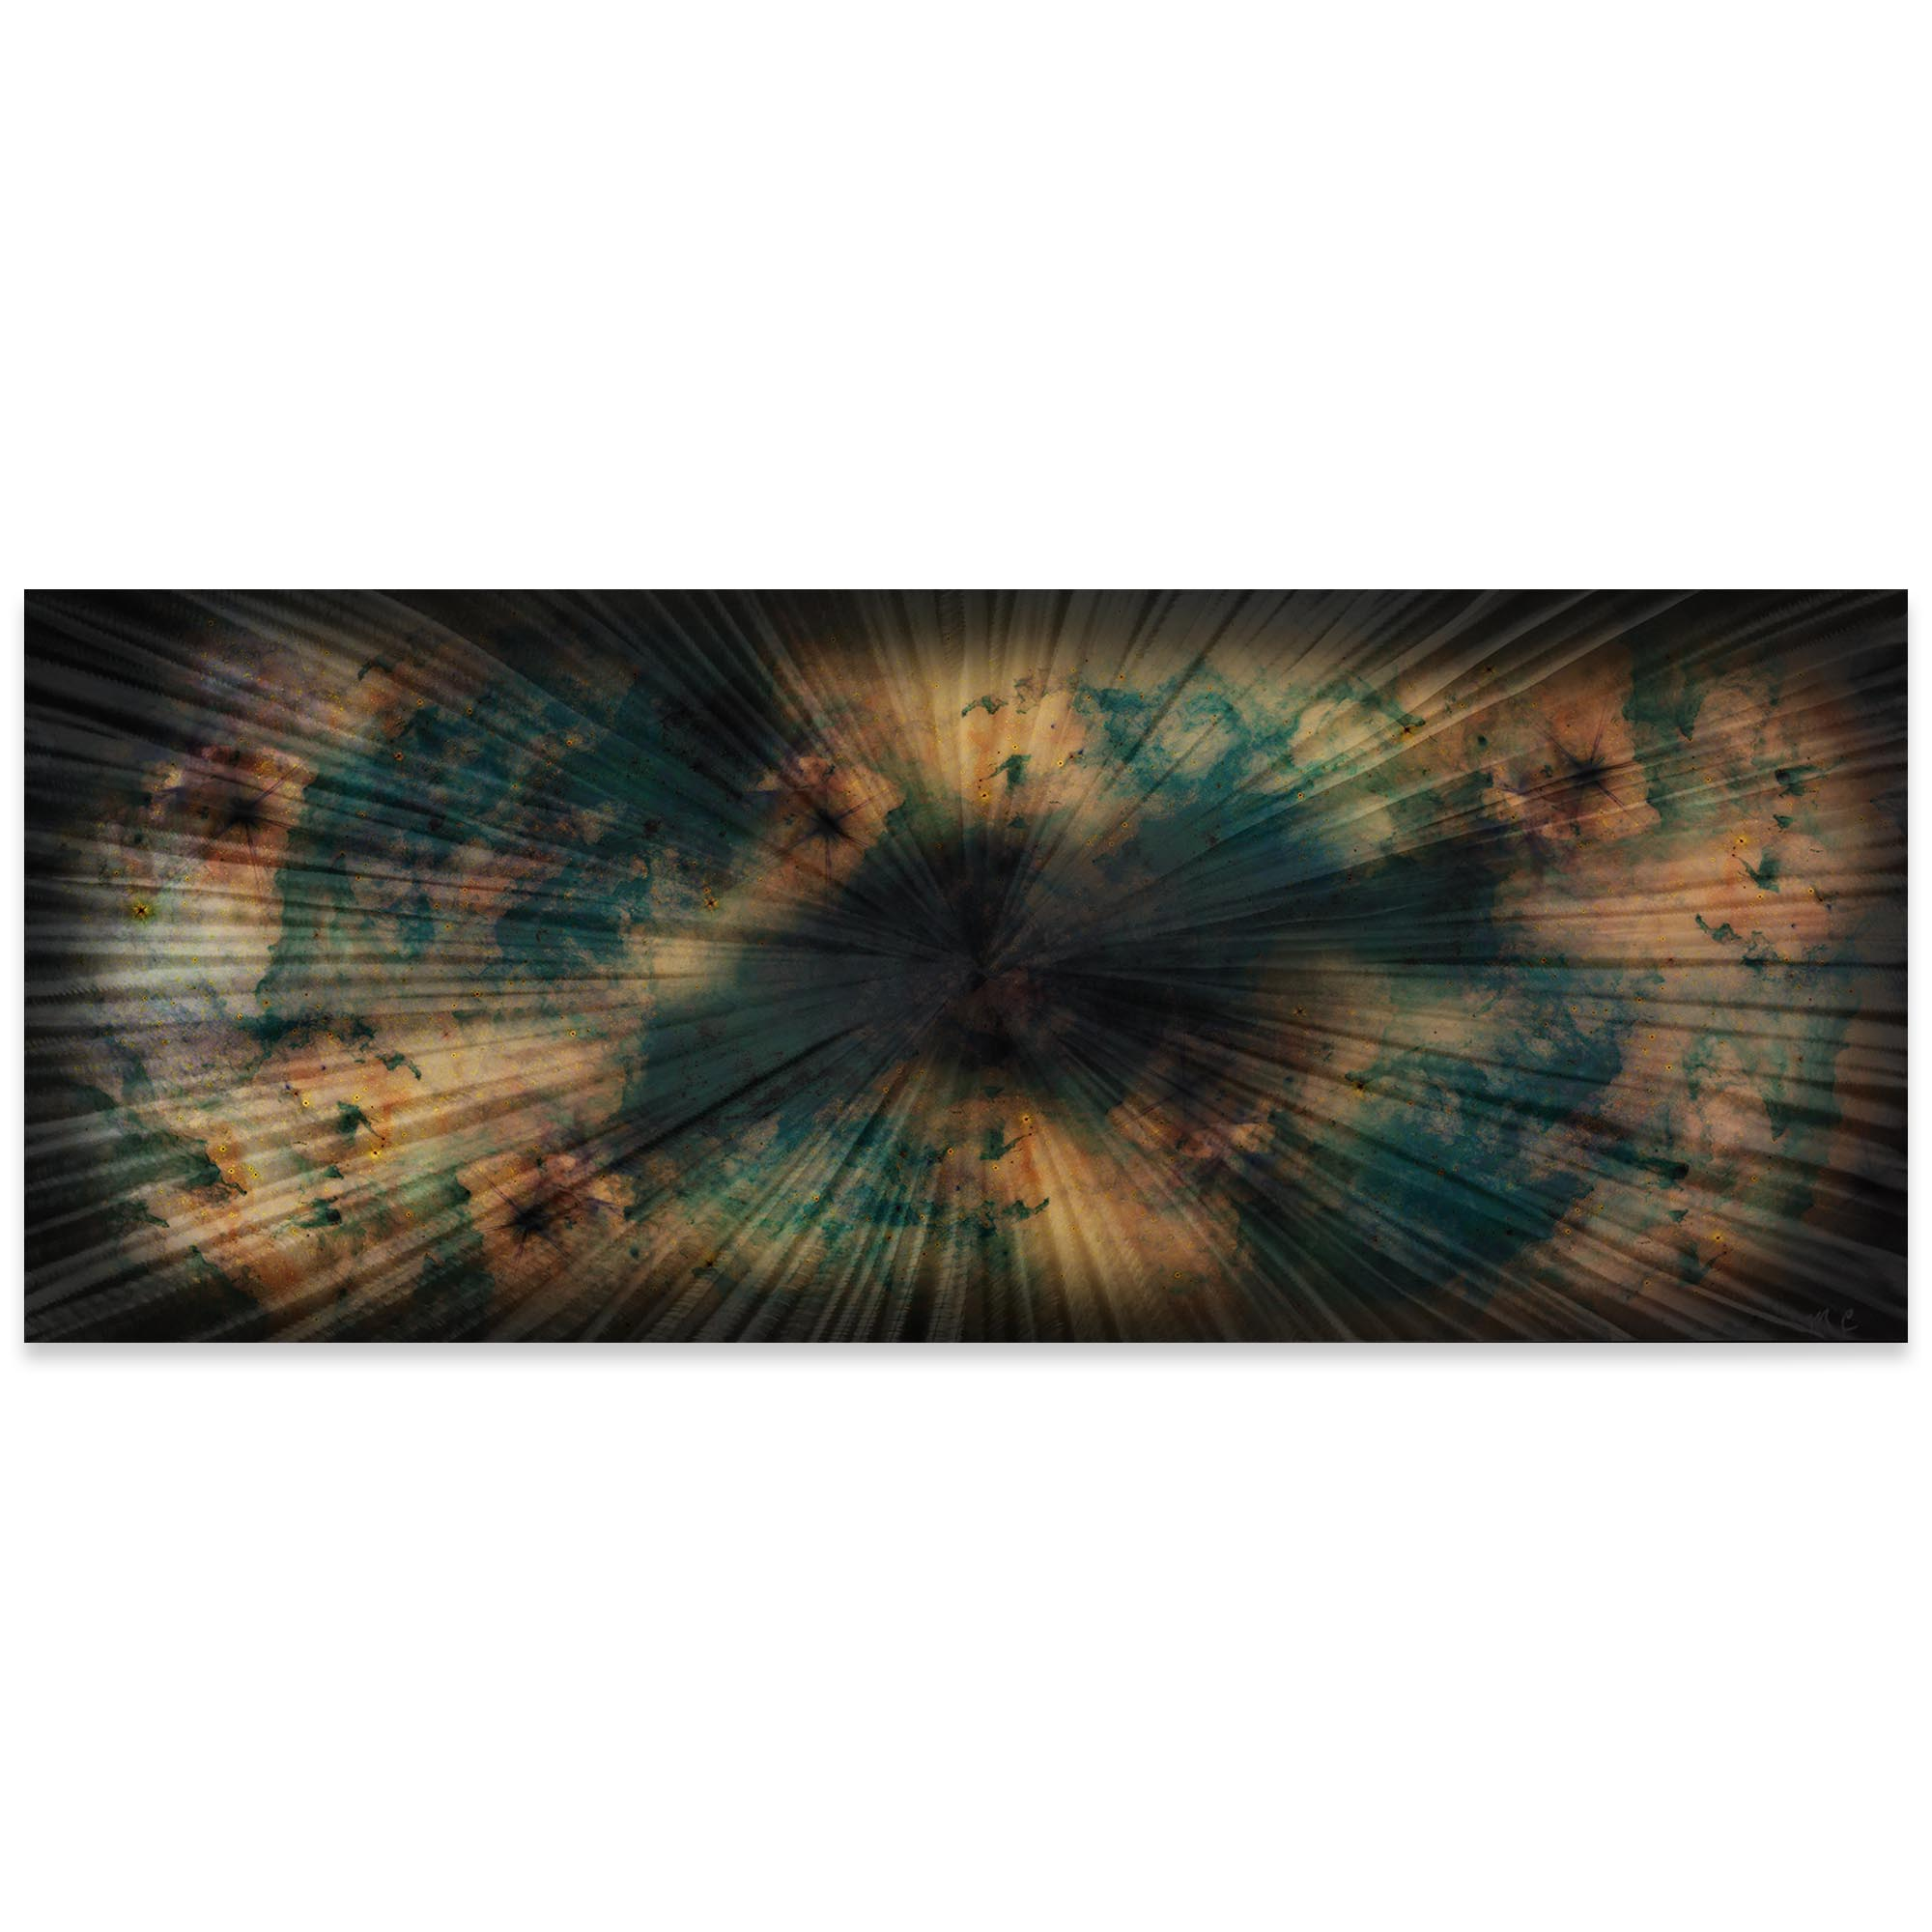 Helena Martin 'Organic Nebula' 60in x 24in Original Abstract Art on Ground and Colored Metal